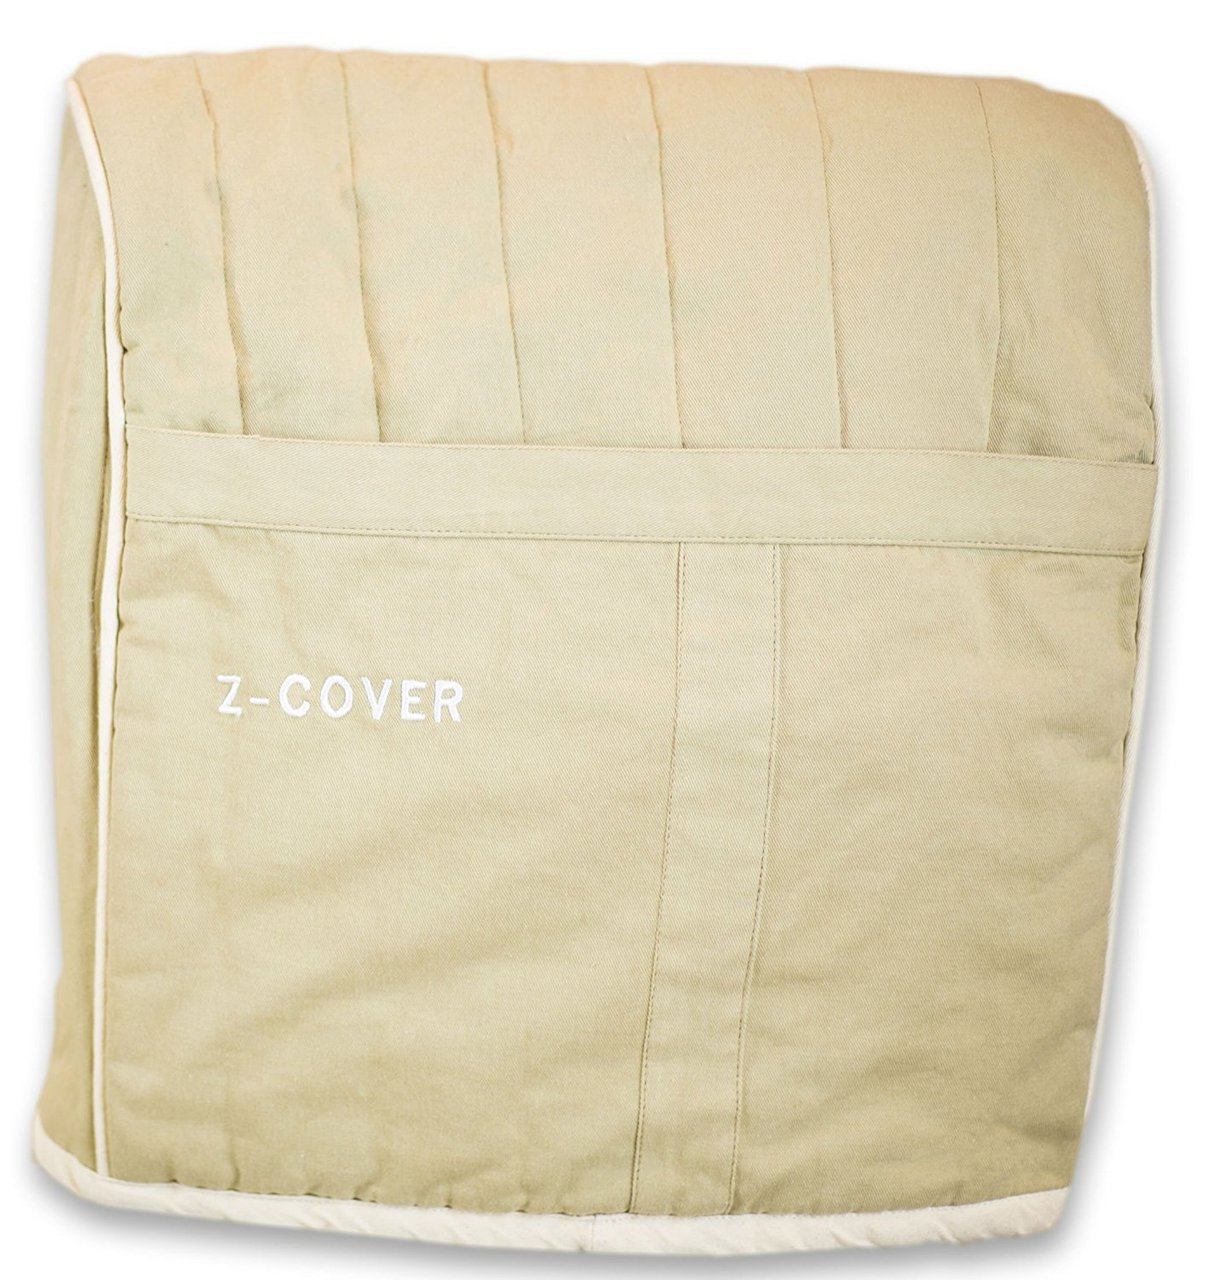 Z-Cover Mixer Cover For Tilt-Head Stand, Artisan and Classic Mixers - Heavyweight 100% Cotton Quilted Cover - Prevents Dust and Grease From Getting On Your Expensive Kitchen Stand Mixer - Silver